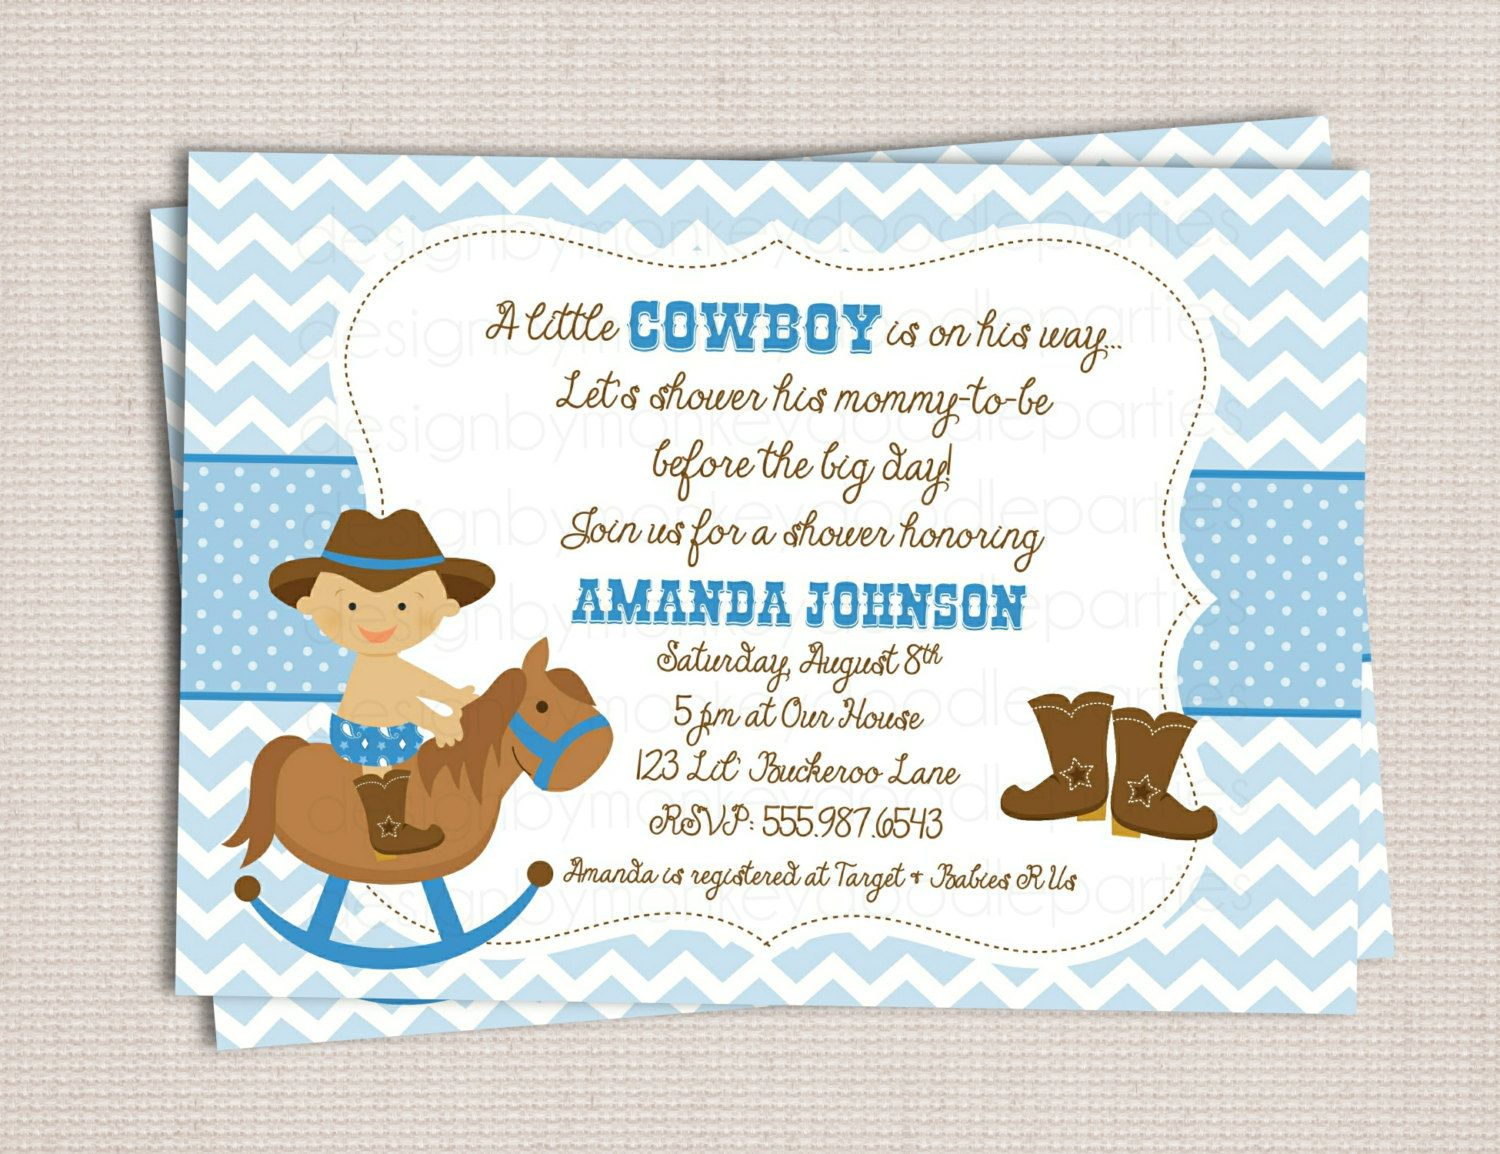 Little Buckaroo Cowboy Baby Shower